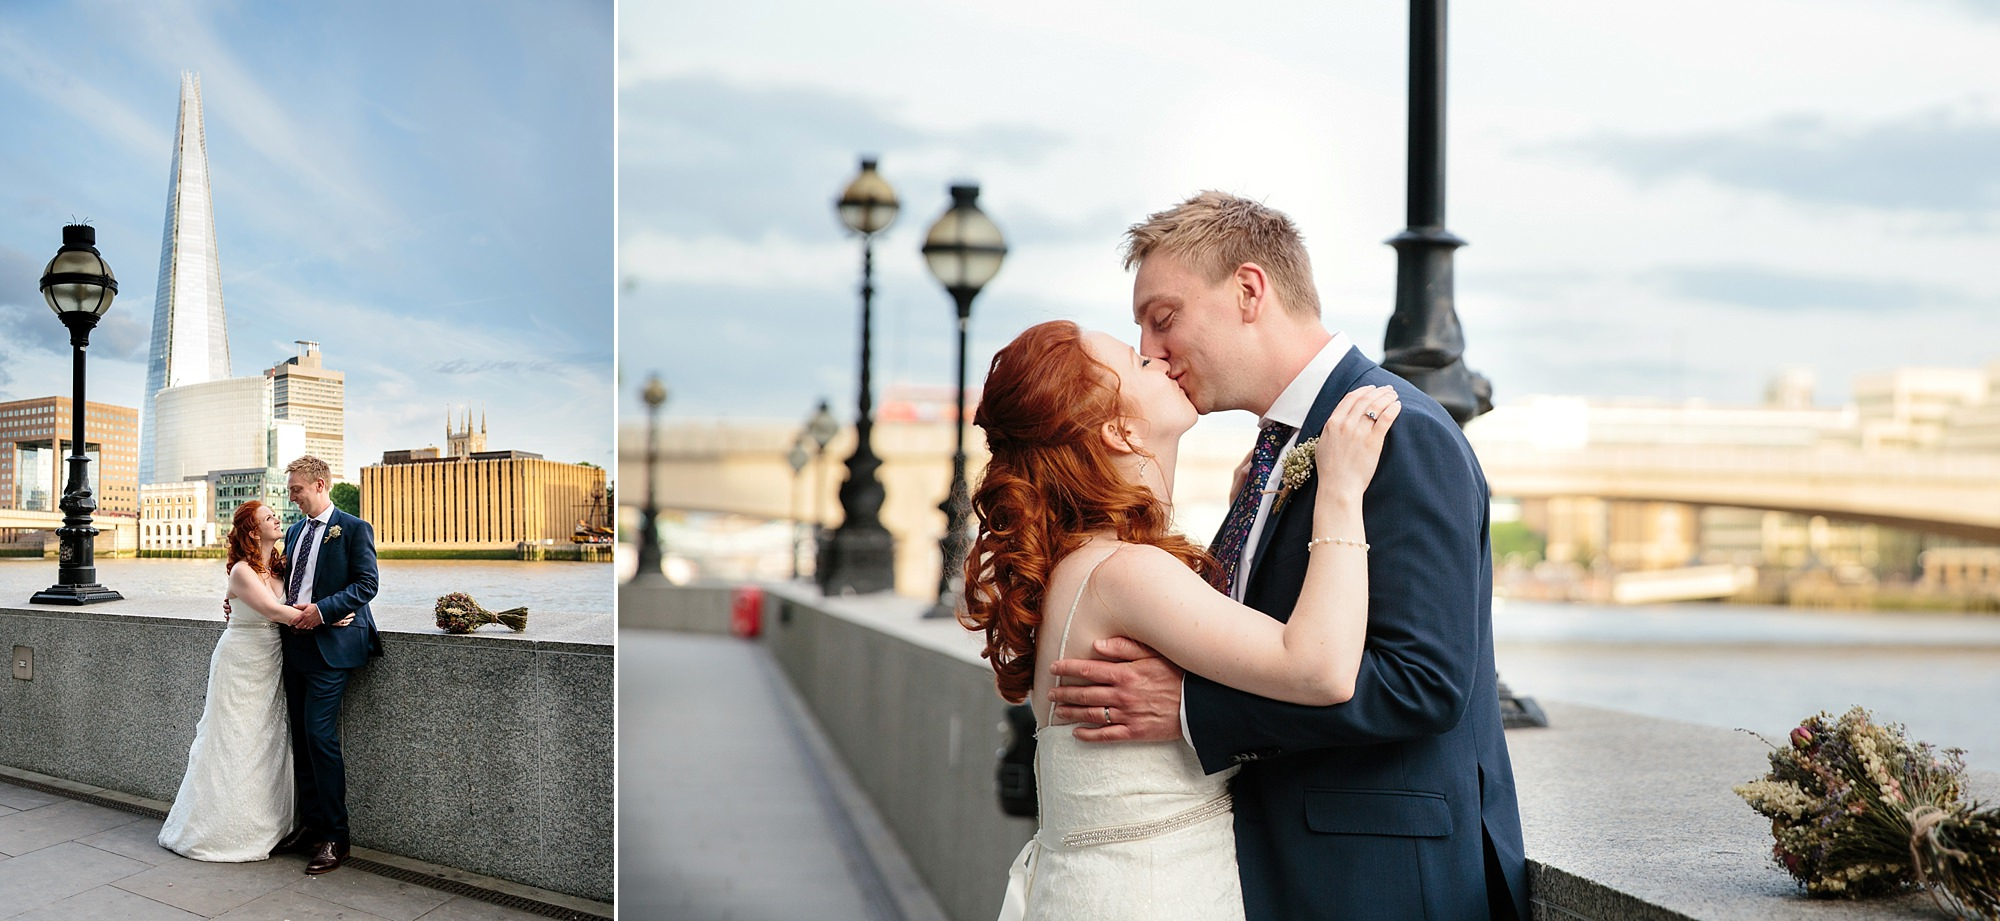 oyster shed wedding portrait of bride and groom by the thames